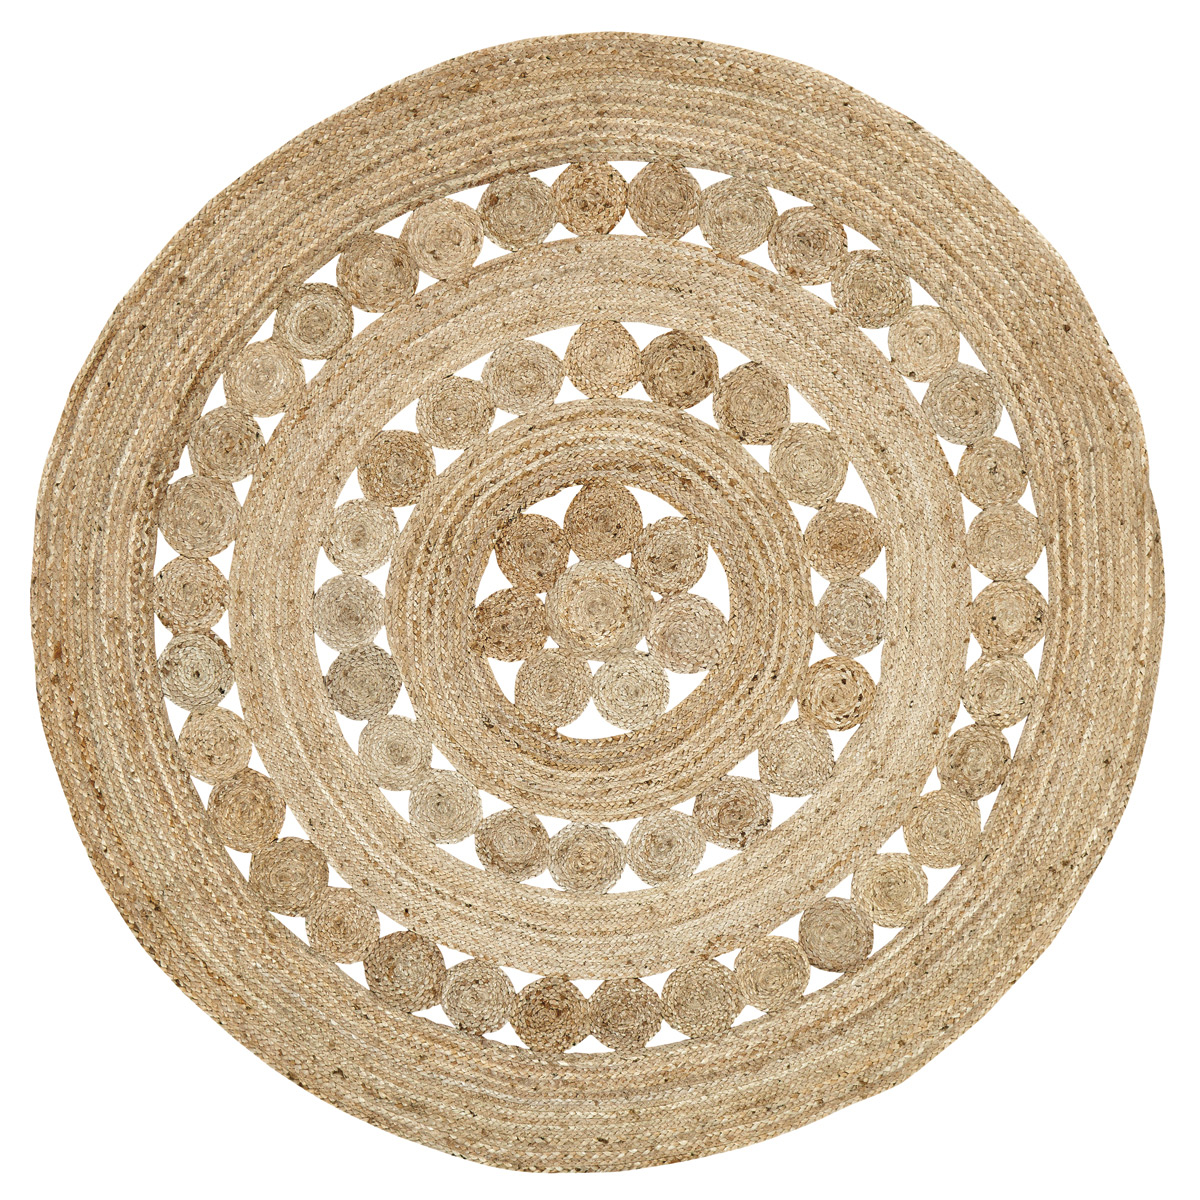 Celeste Round 6 Foot Jute Rug By Vhc Brands The Weed Patch